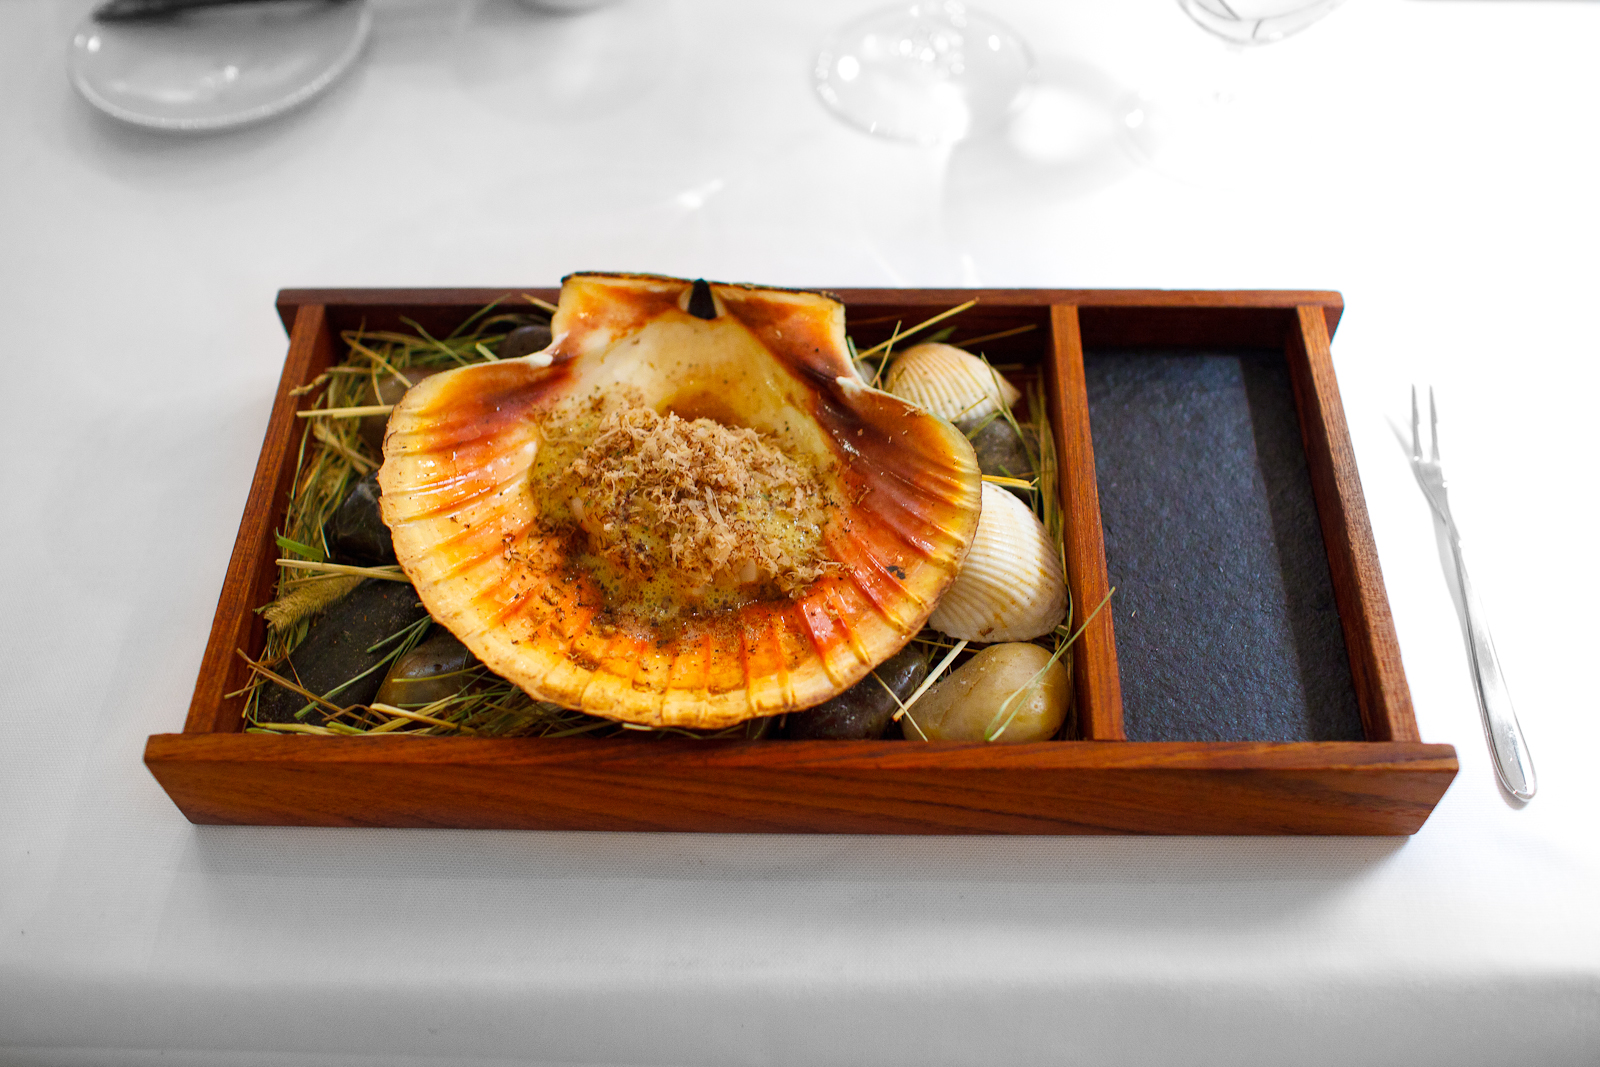 3rd Course: Scallop from Trondheim, Norway in two servings. First, cooked over open fire in its shell with lemon sabayon, truffle, and natural juices.